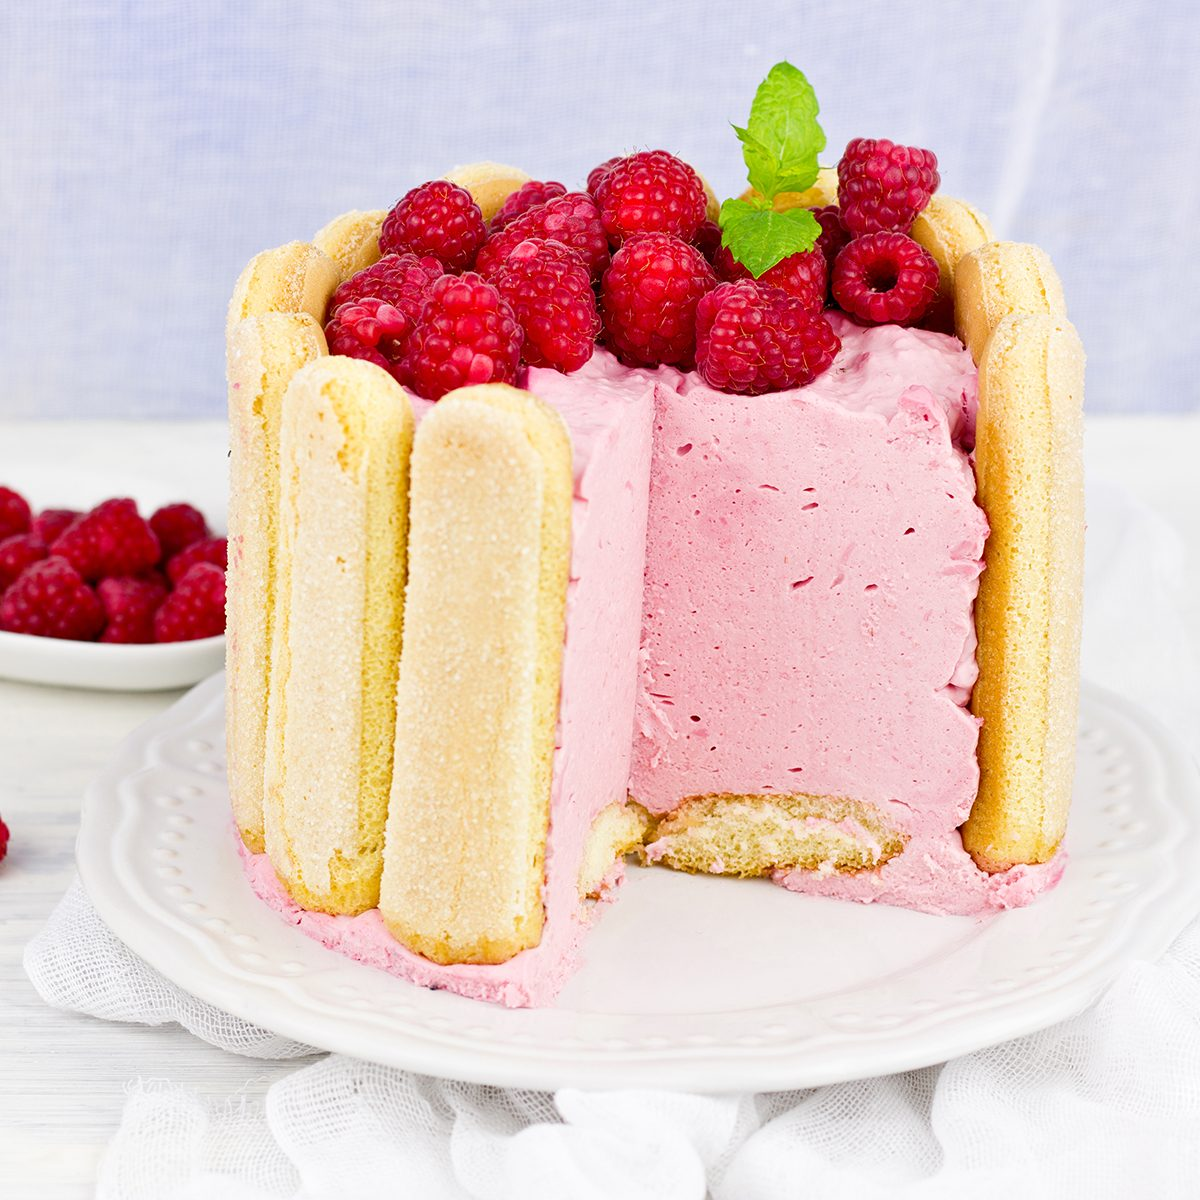 """Cake """"Charlotte Russ"""" with raspberries and cream, selective focus."""